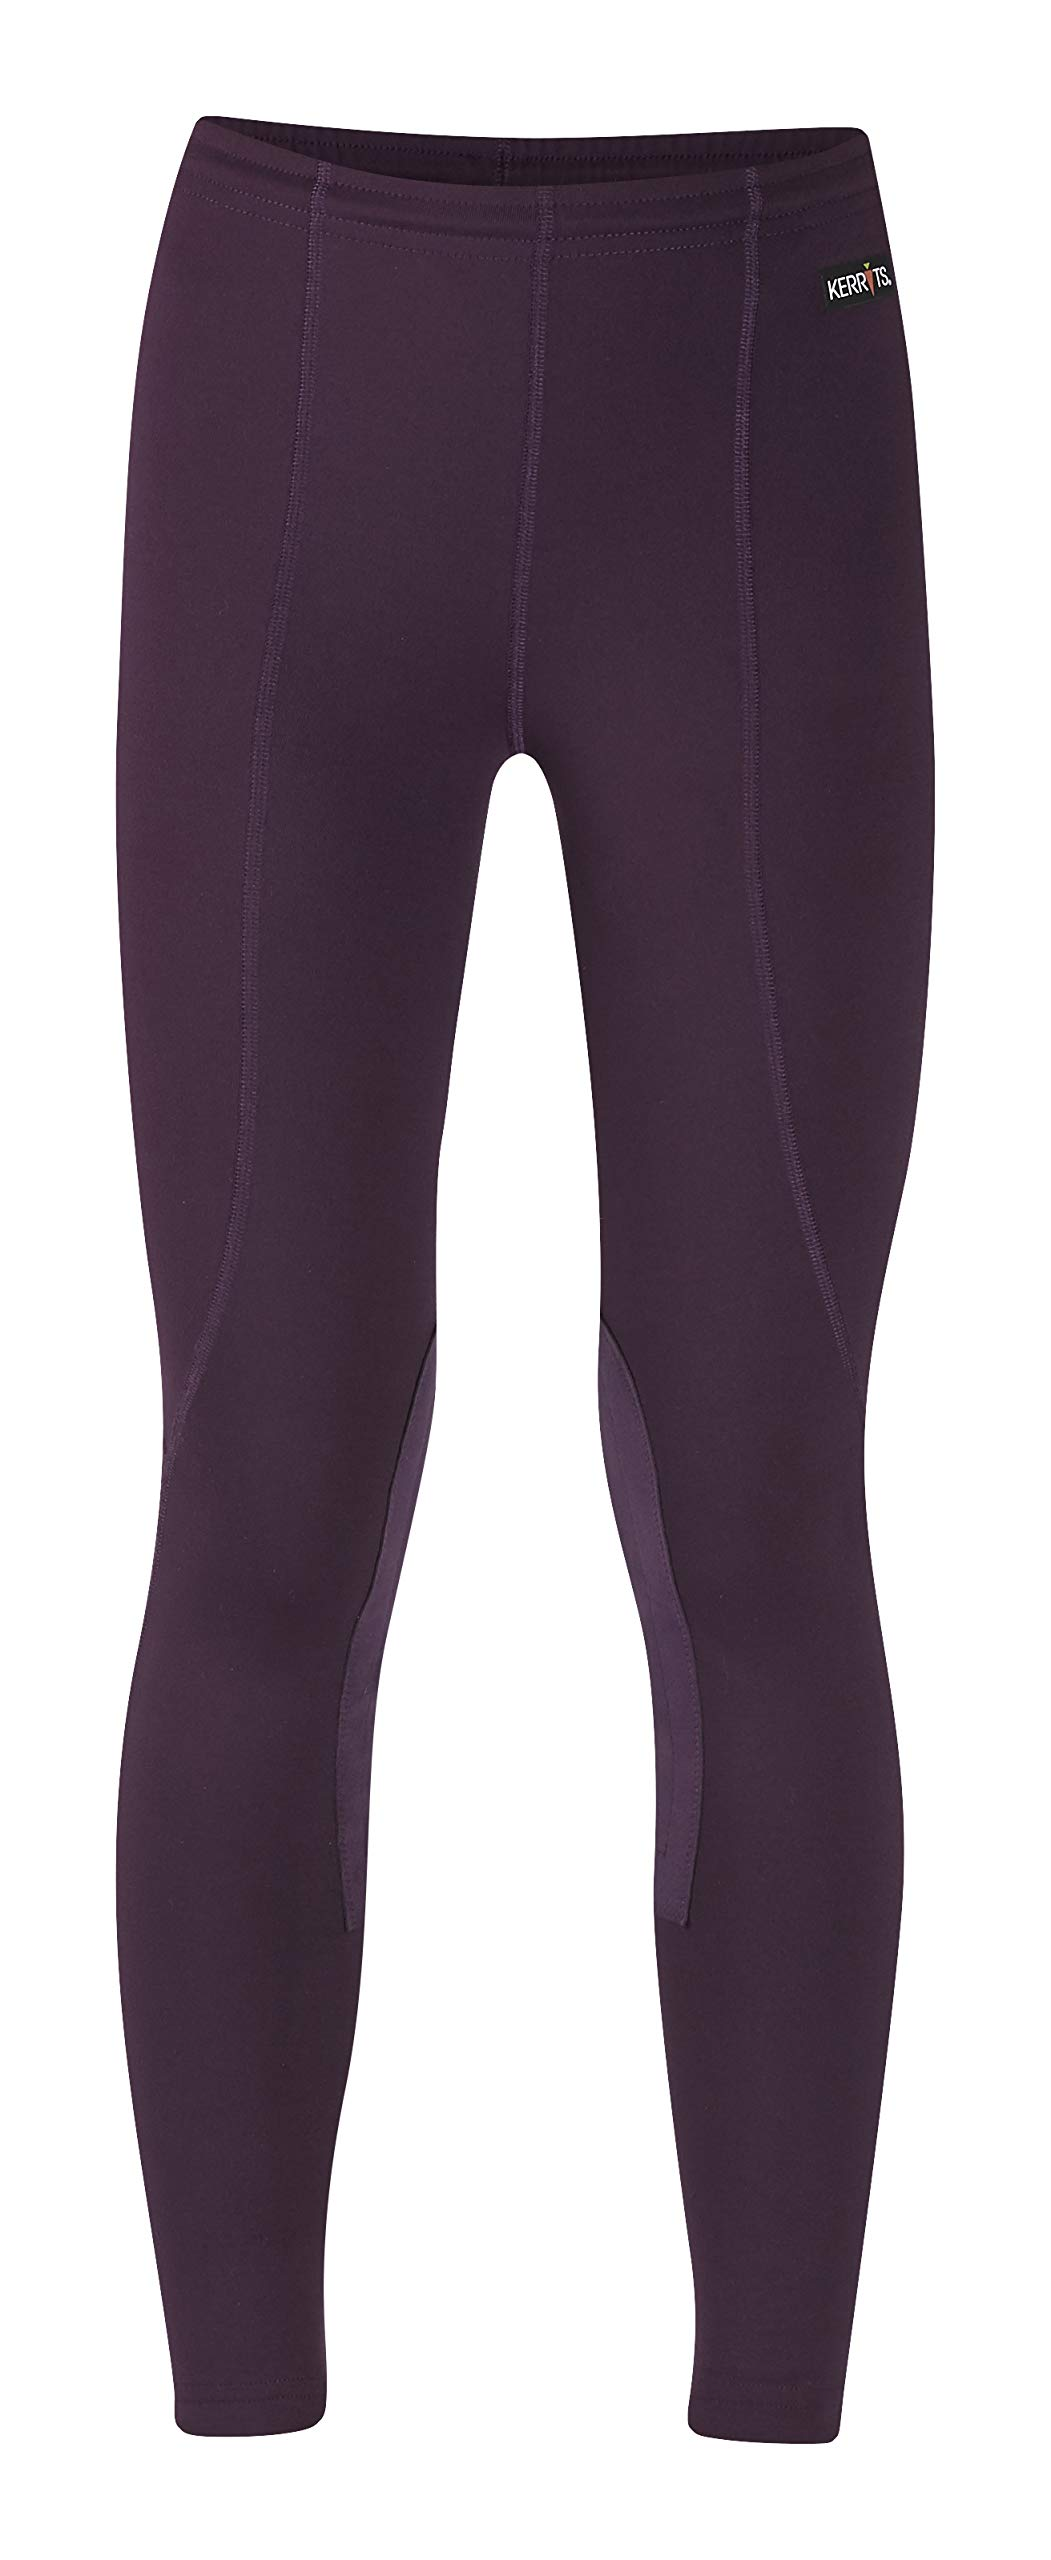 Kerrits Kids Performance Tight Boysenberry Size: Extra Small